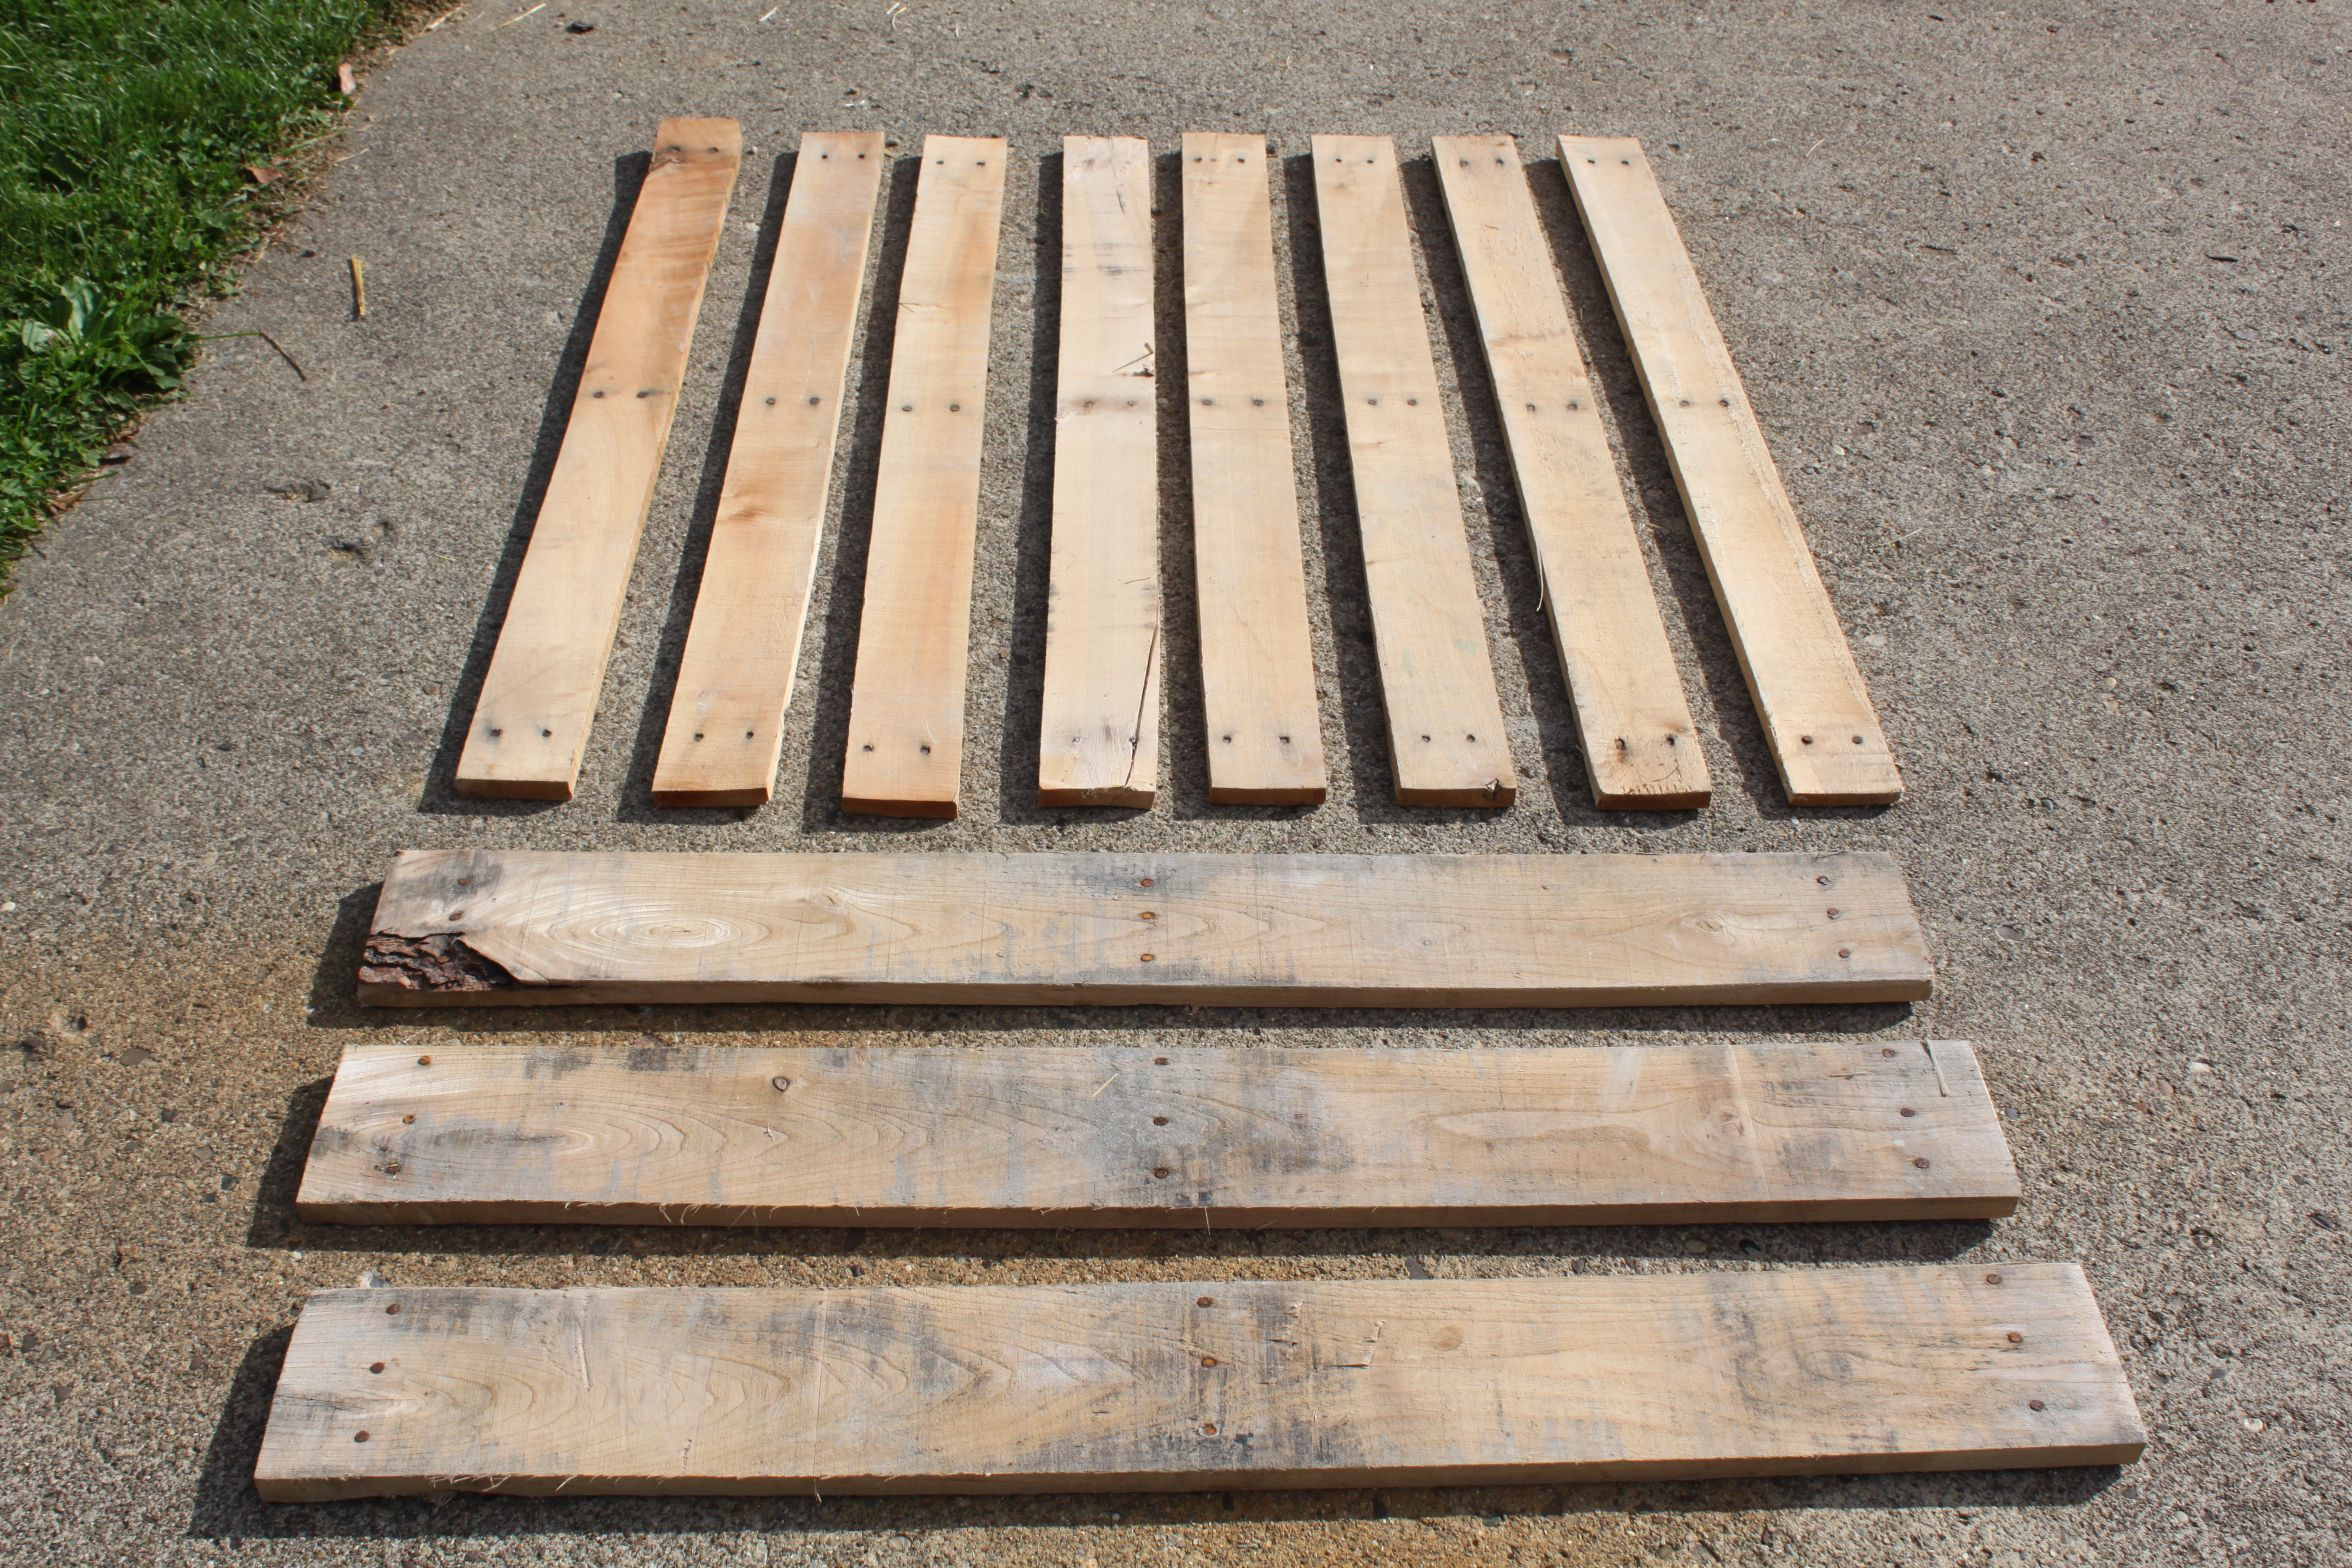 How to Disassemble Pallets With Ease